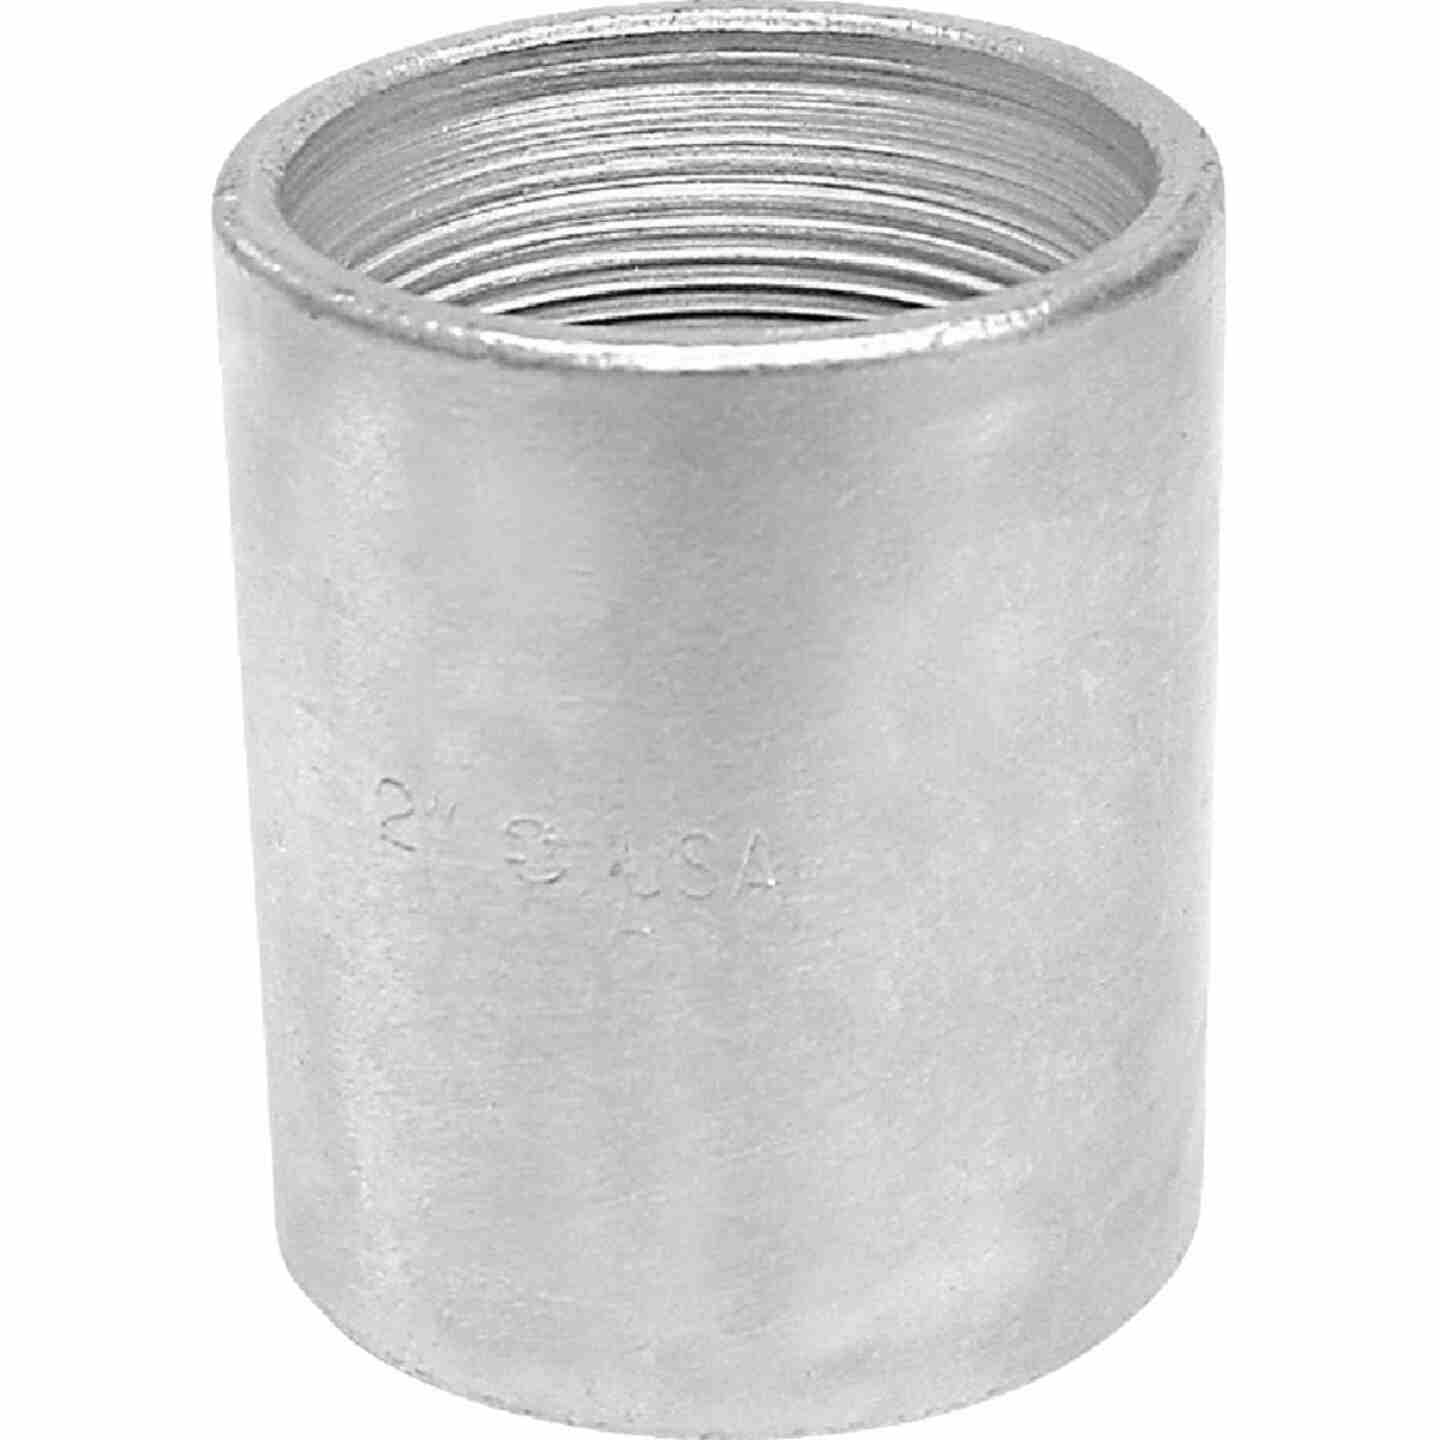 Anvil 1/8 In. x 1/8 In. FPT Standard Merchant Galvanized Coupling Image 1